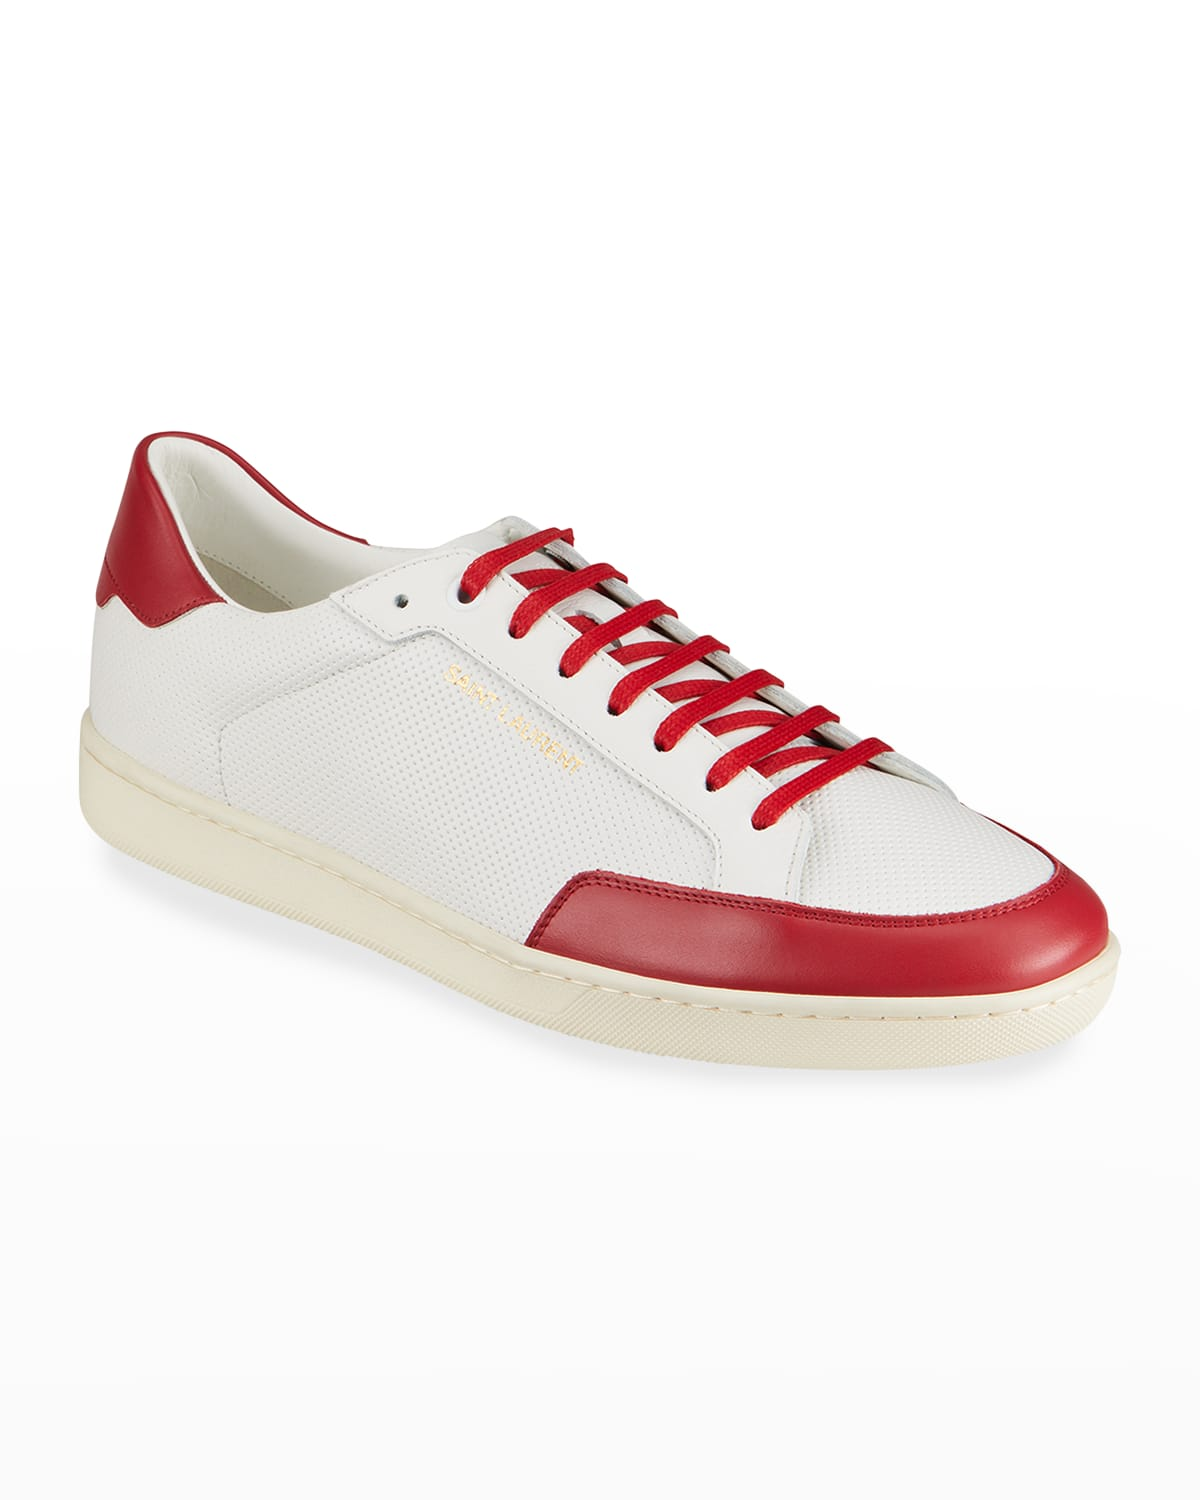 Men's Court Classic SL/10 Two-Tone Perforated Low-Top Sneakers